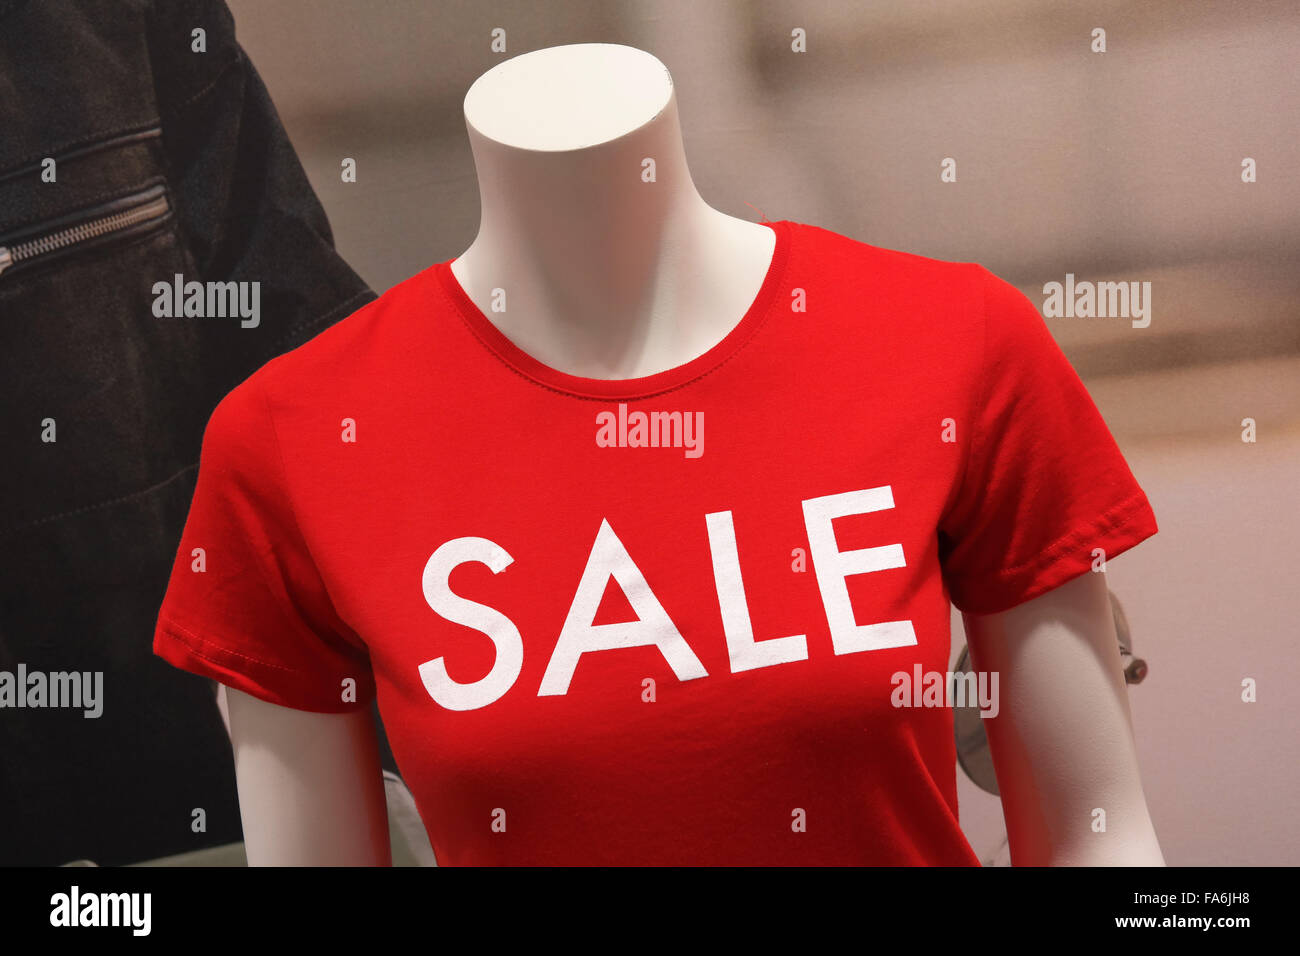 26f36a93c Sale printed on red T-shirt of a mannequin in a shop window Stock ...